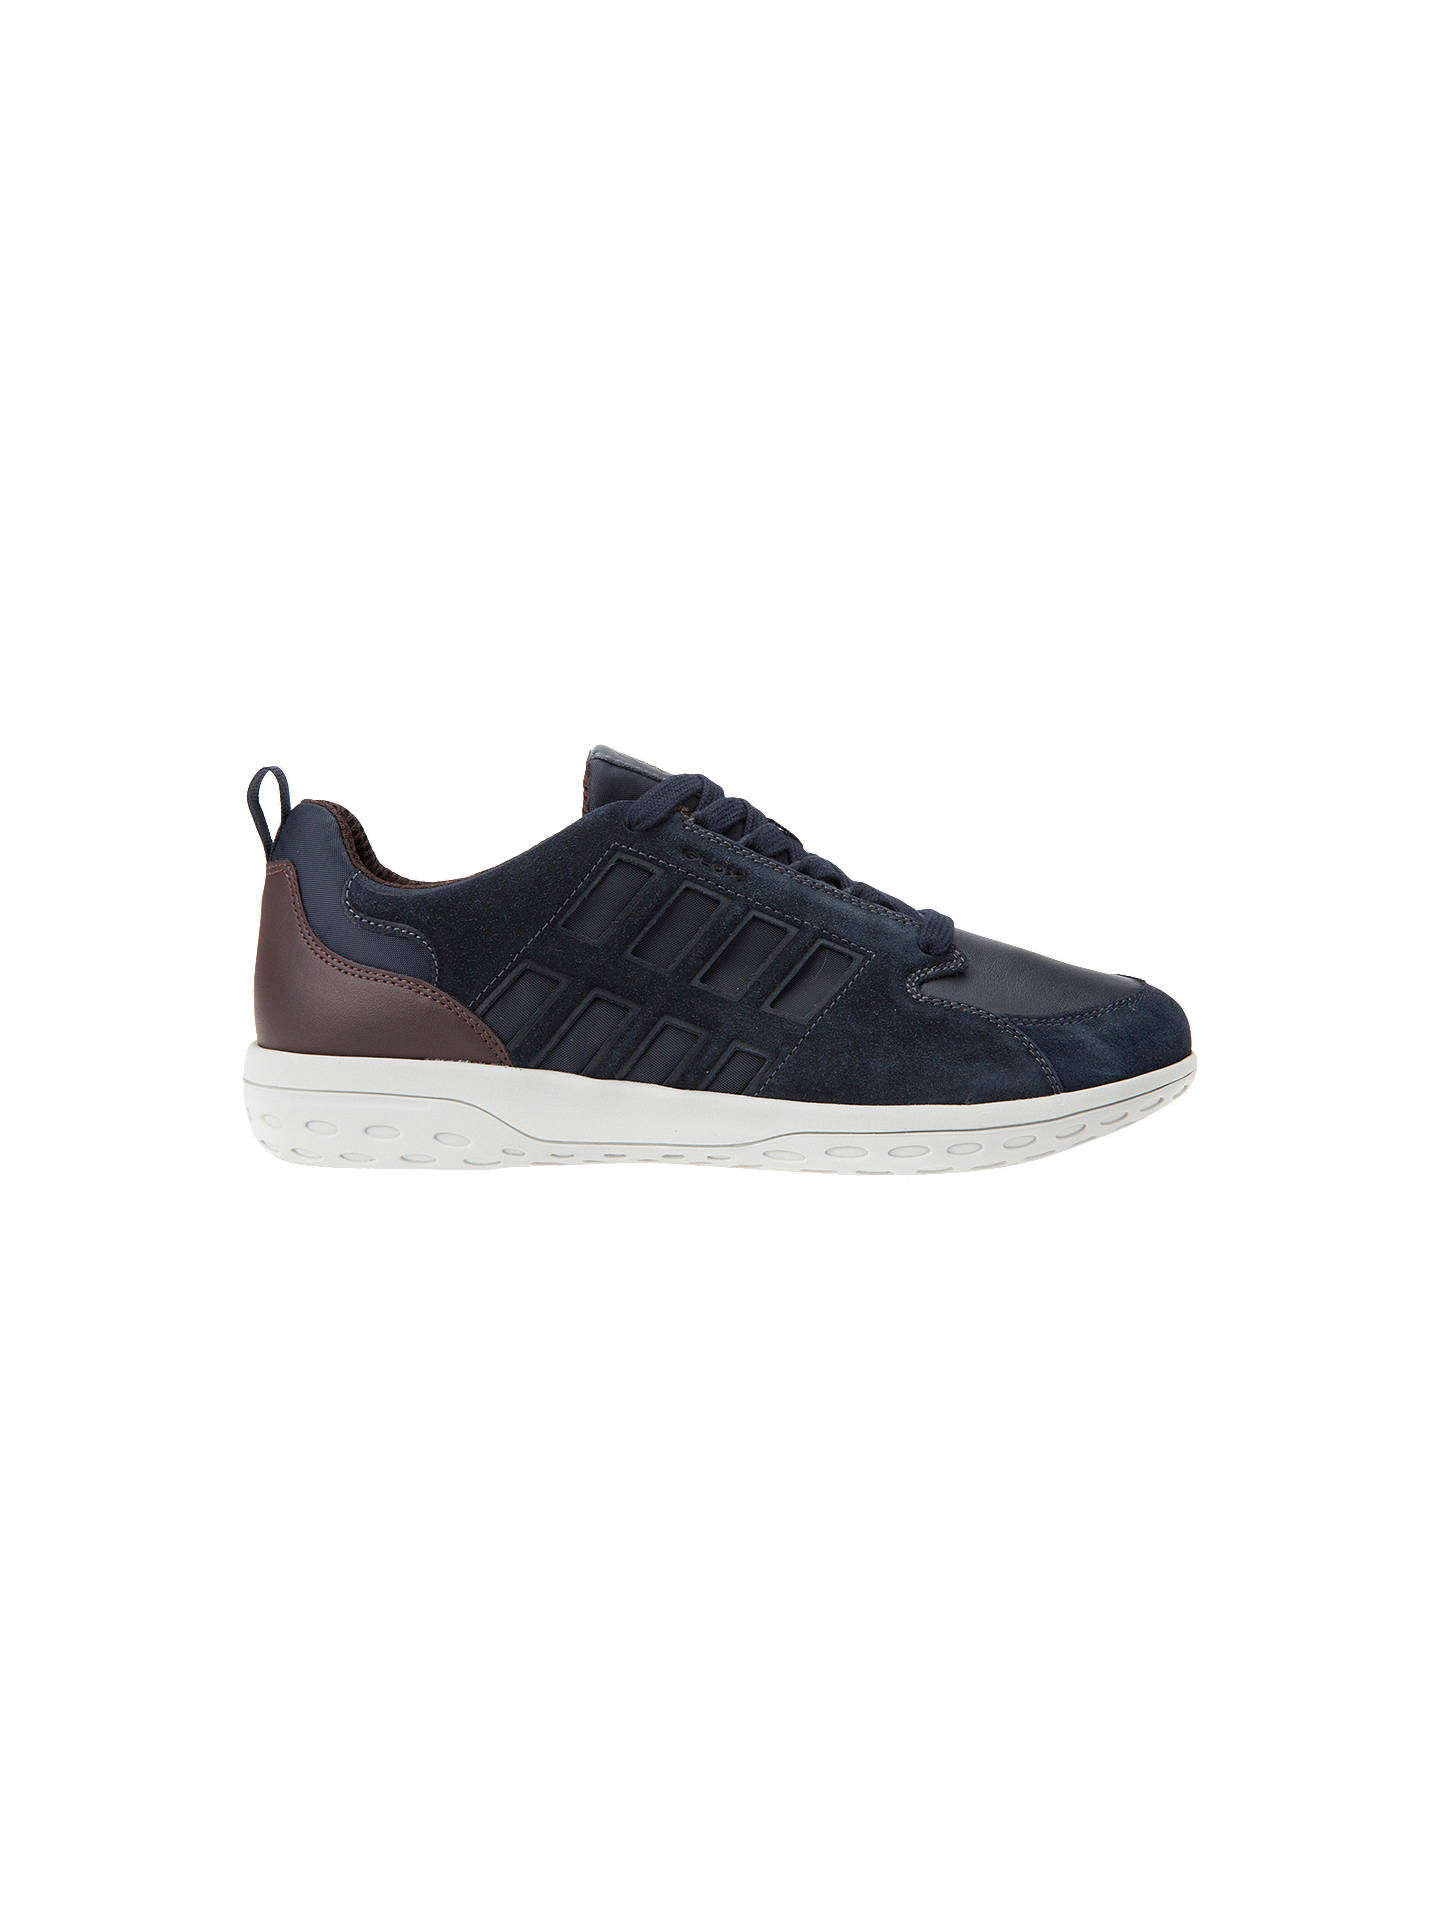 Geox Mansel Lace Up Trainers at John Lewis   Partners f258d67278c